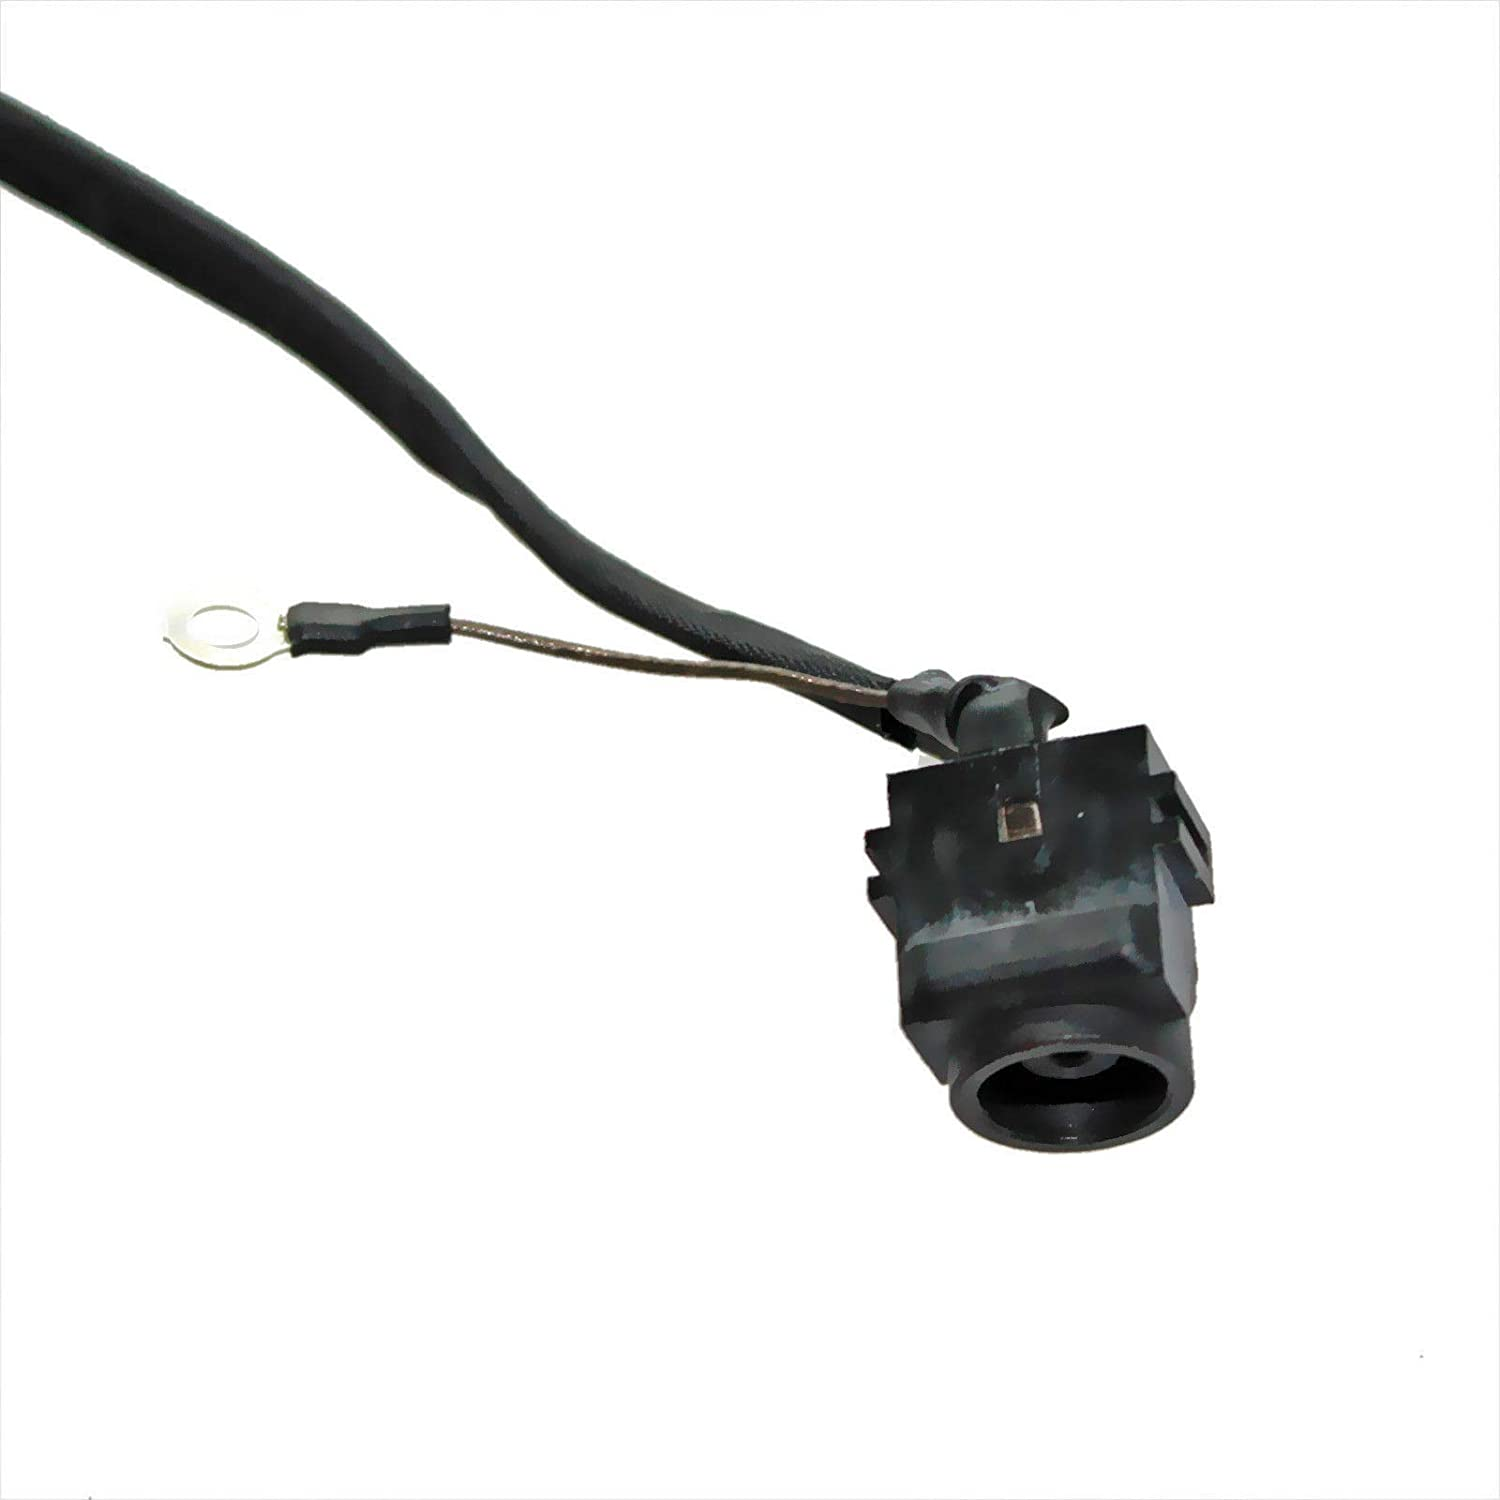 GinTai AC DC in Power Jack with Cable Socket Plug Replacement for Sony VAIO SVS15115FXB SVS15116FXB